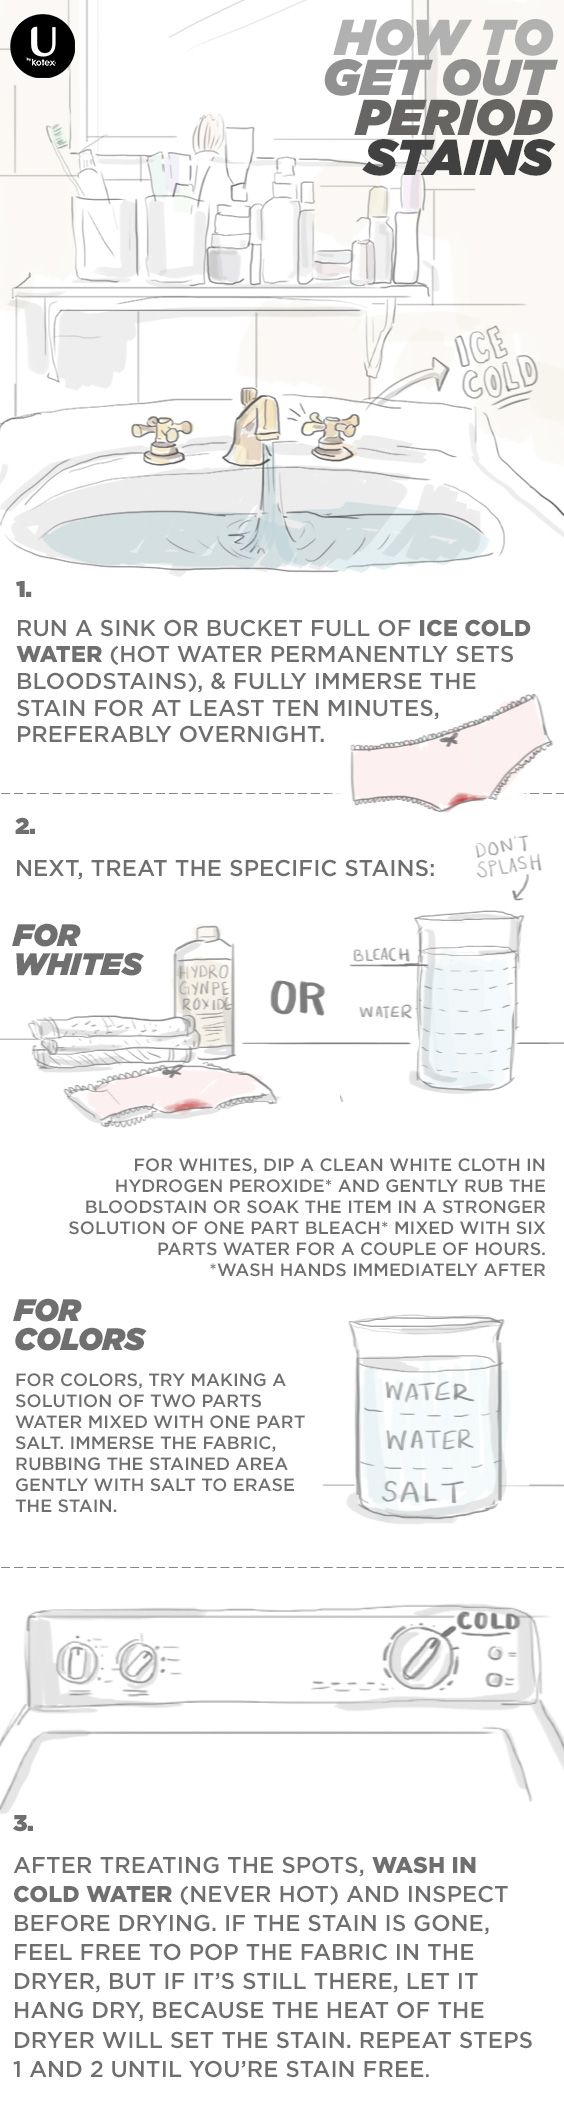 d6ce27af7ab24671f5616966adbb7dd6 - How To Get Period Stains Out Of White Underwear